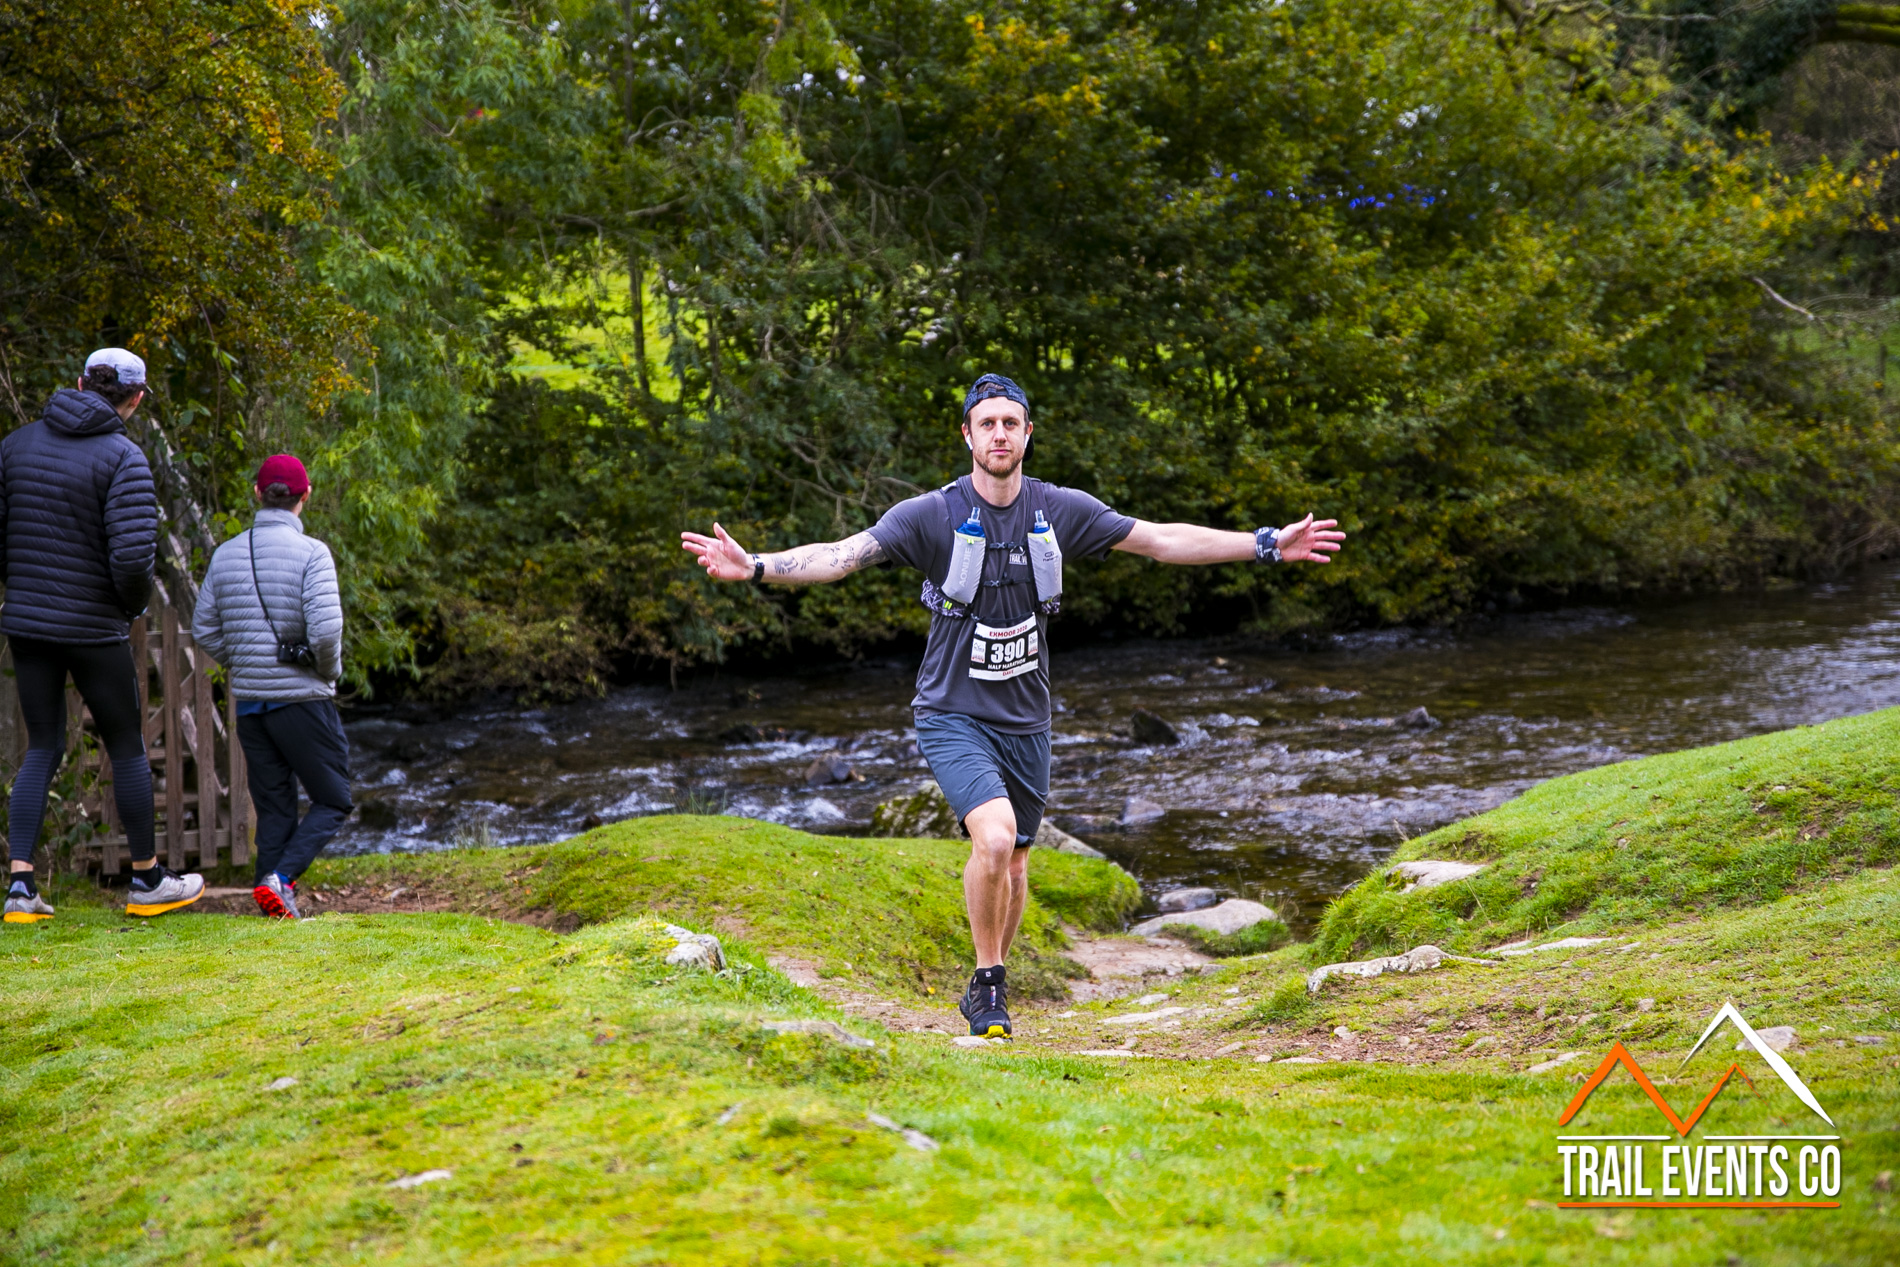 Dartmoor Trail Running Challenge 2021 - Trail Events Co